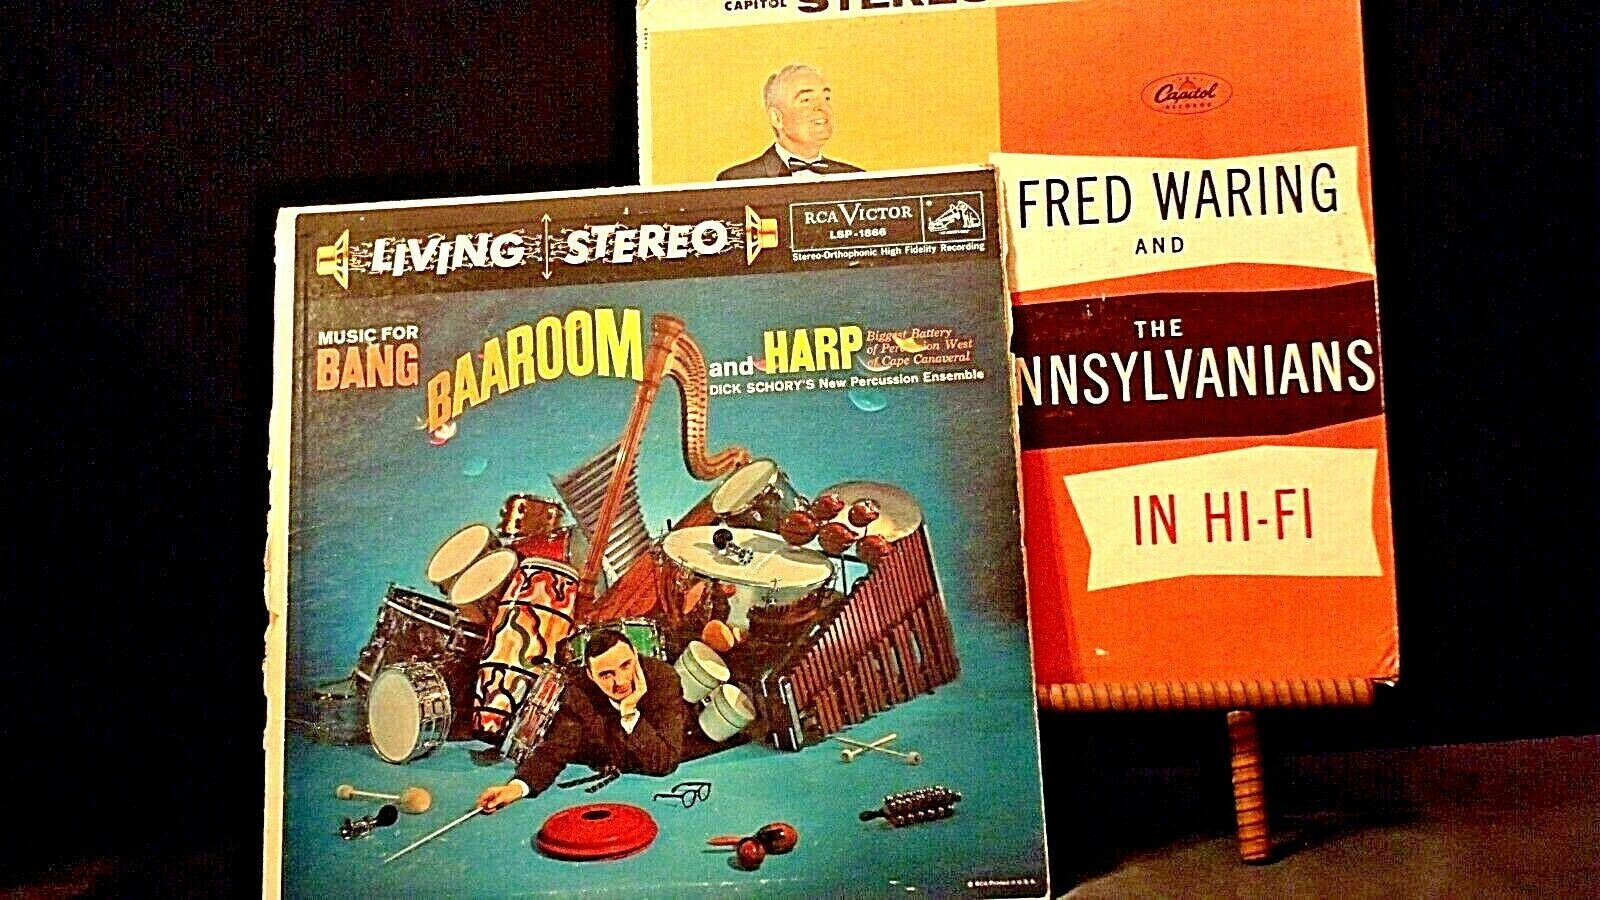 Fred Waring Pennsylvanians The Room in Hi-Fi Harp Dick Schory New Percussion Ens